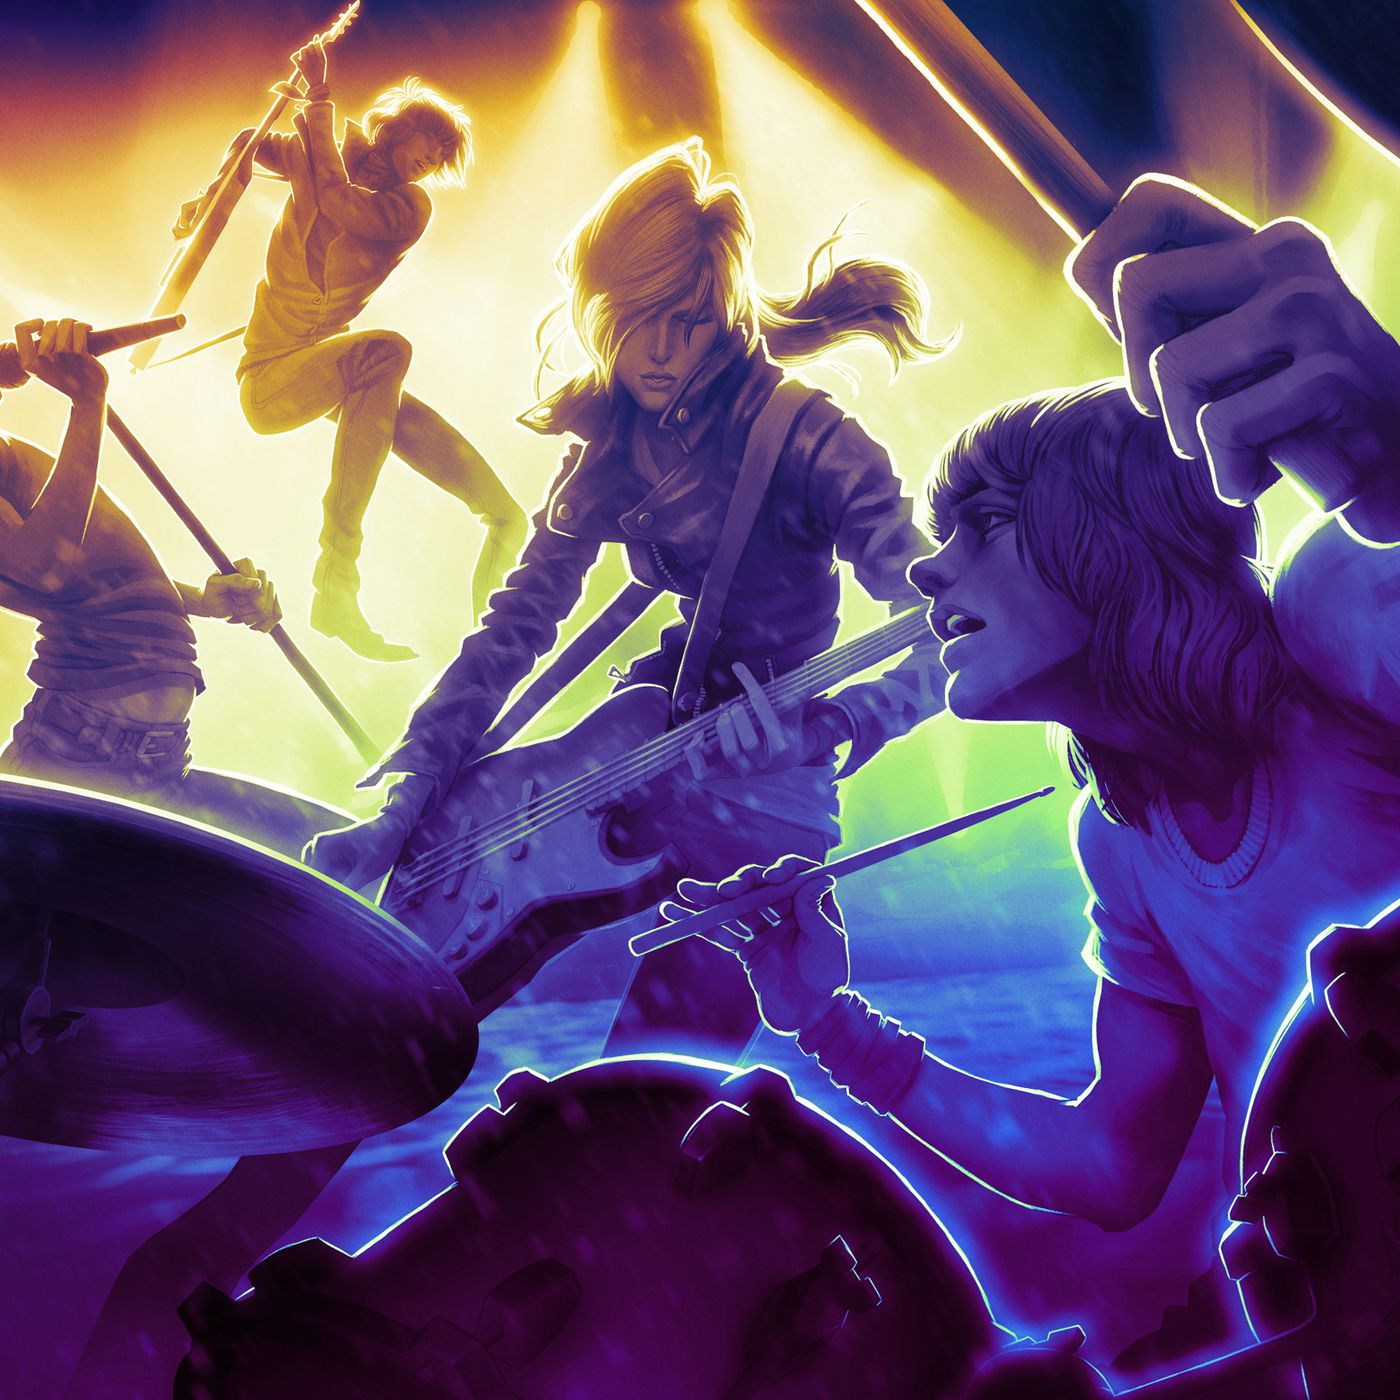 Rock Band 4 is coming this year for Xbox One and PlayStation